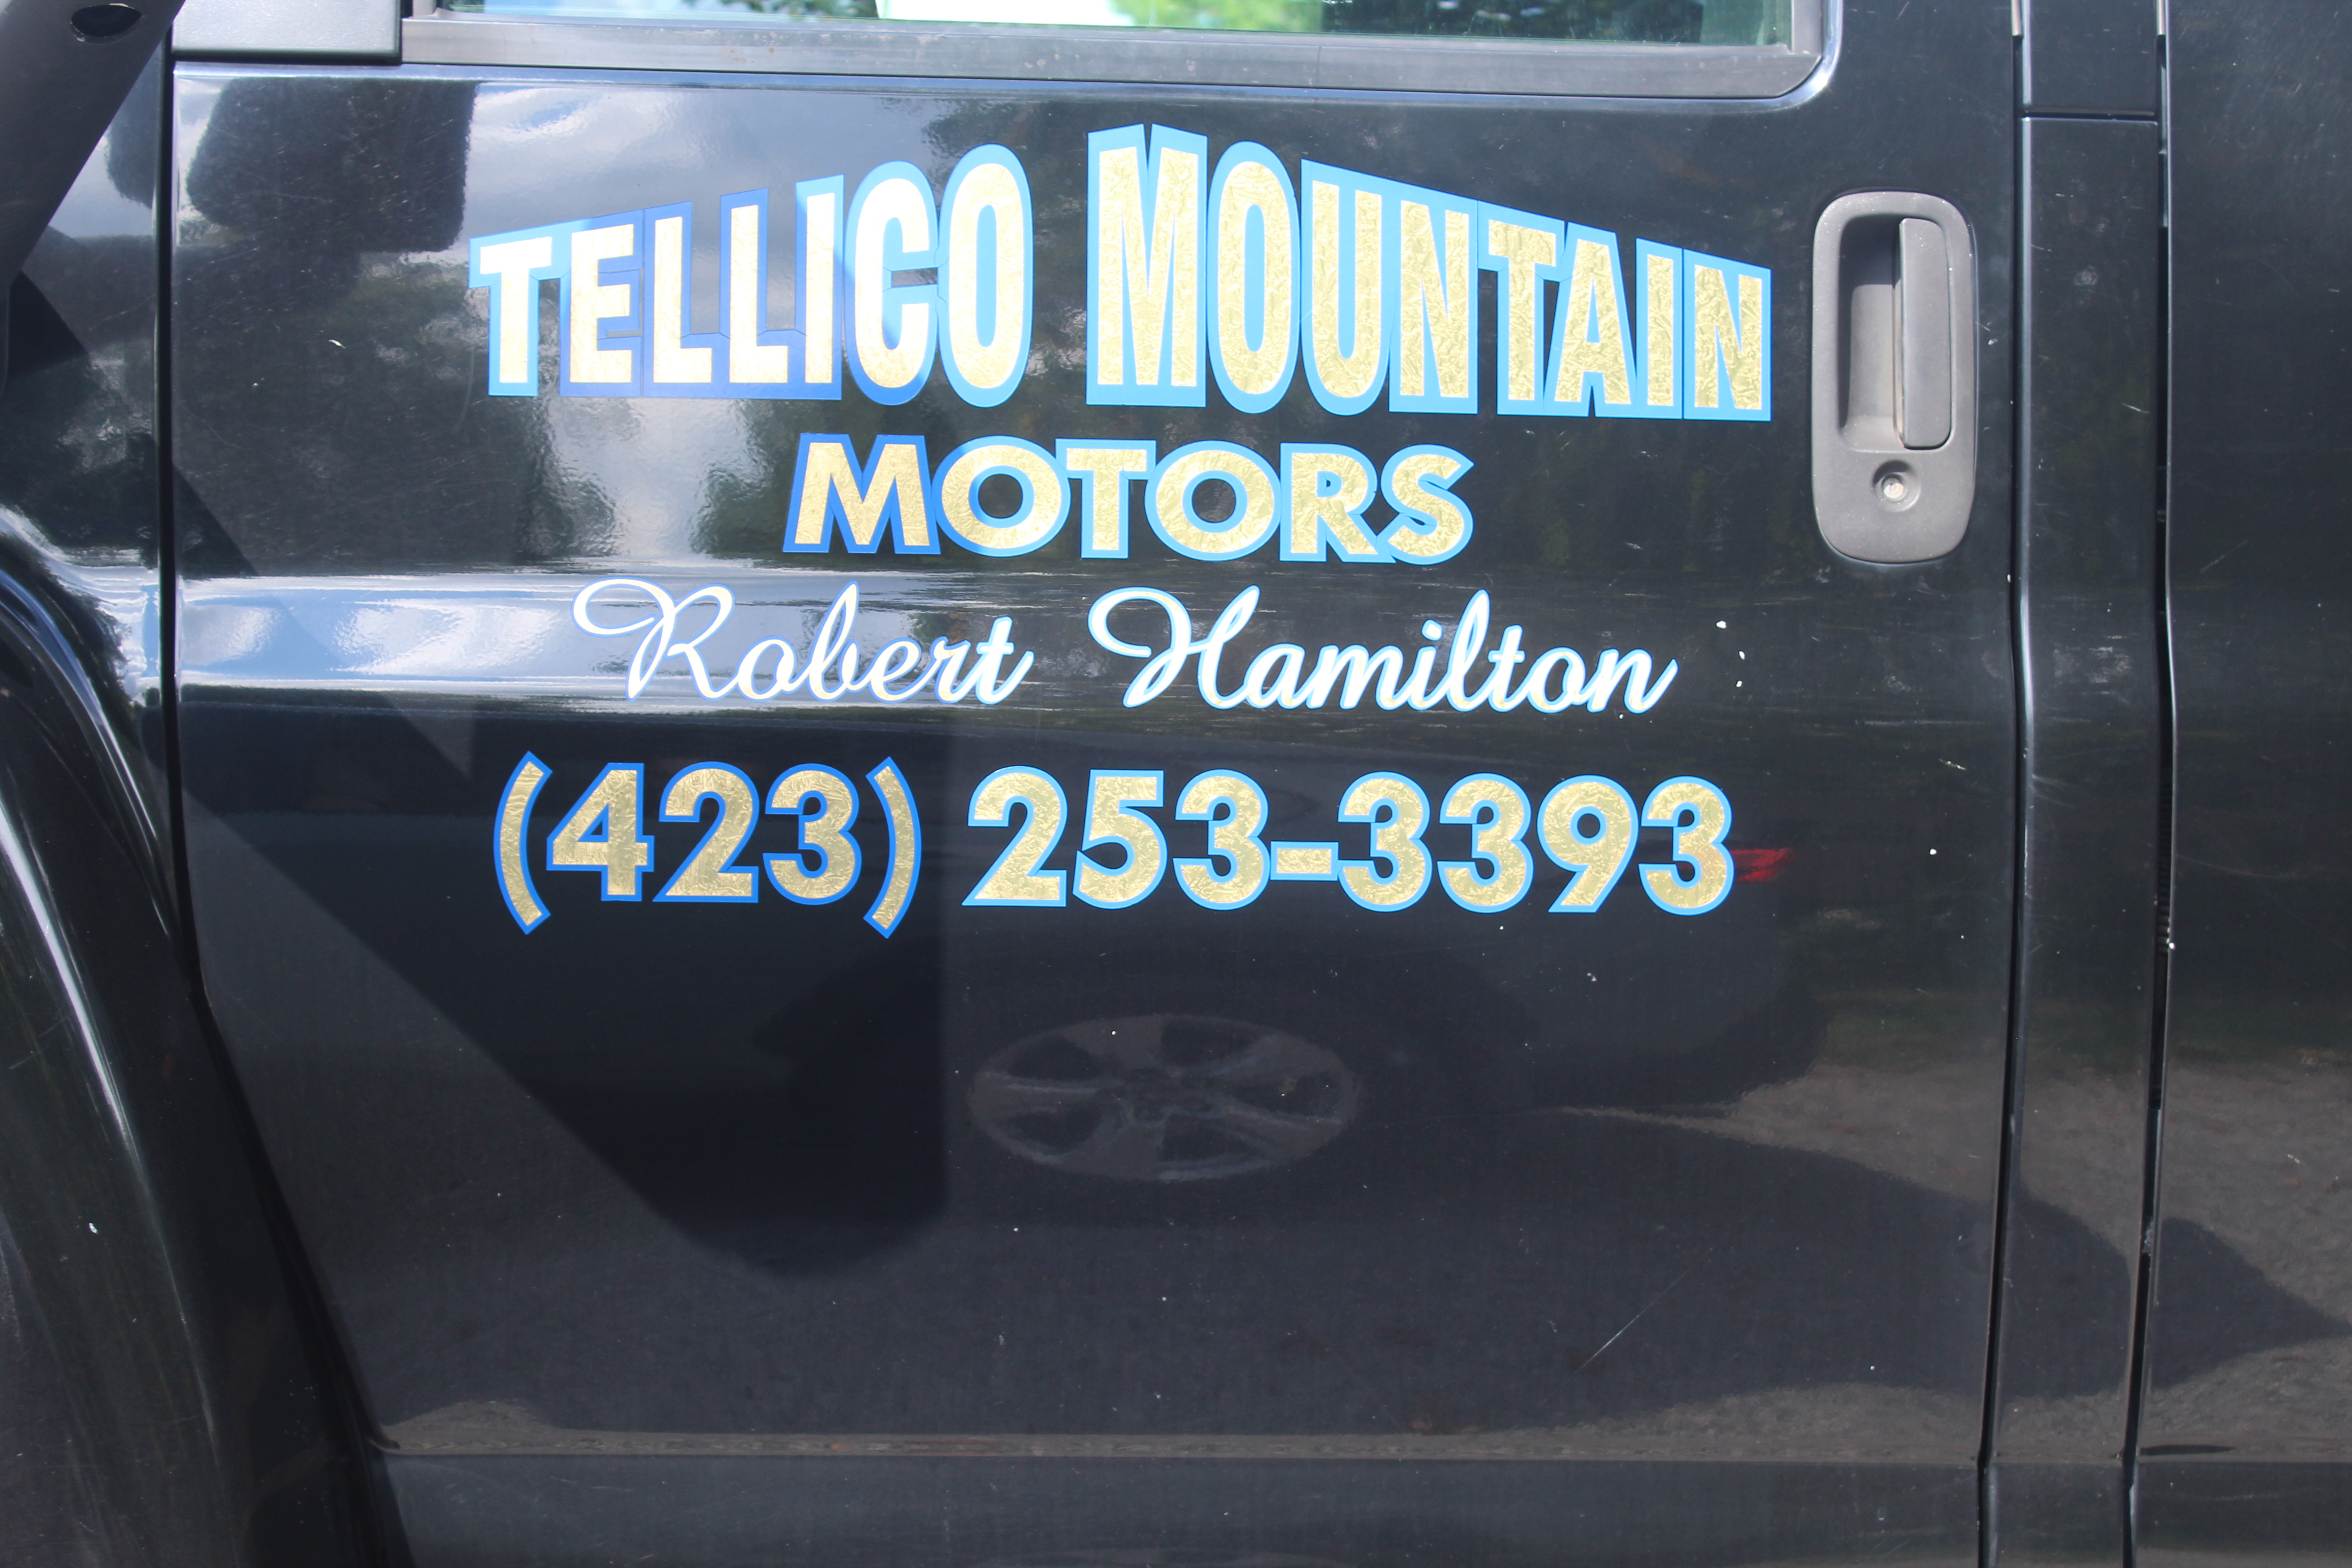 Tellico Mountain Motors